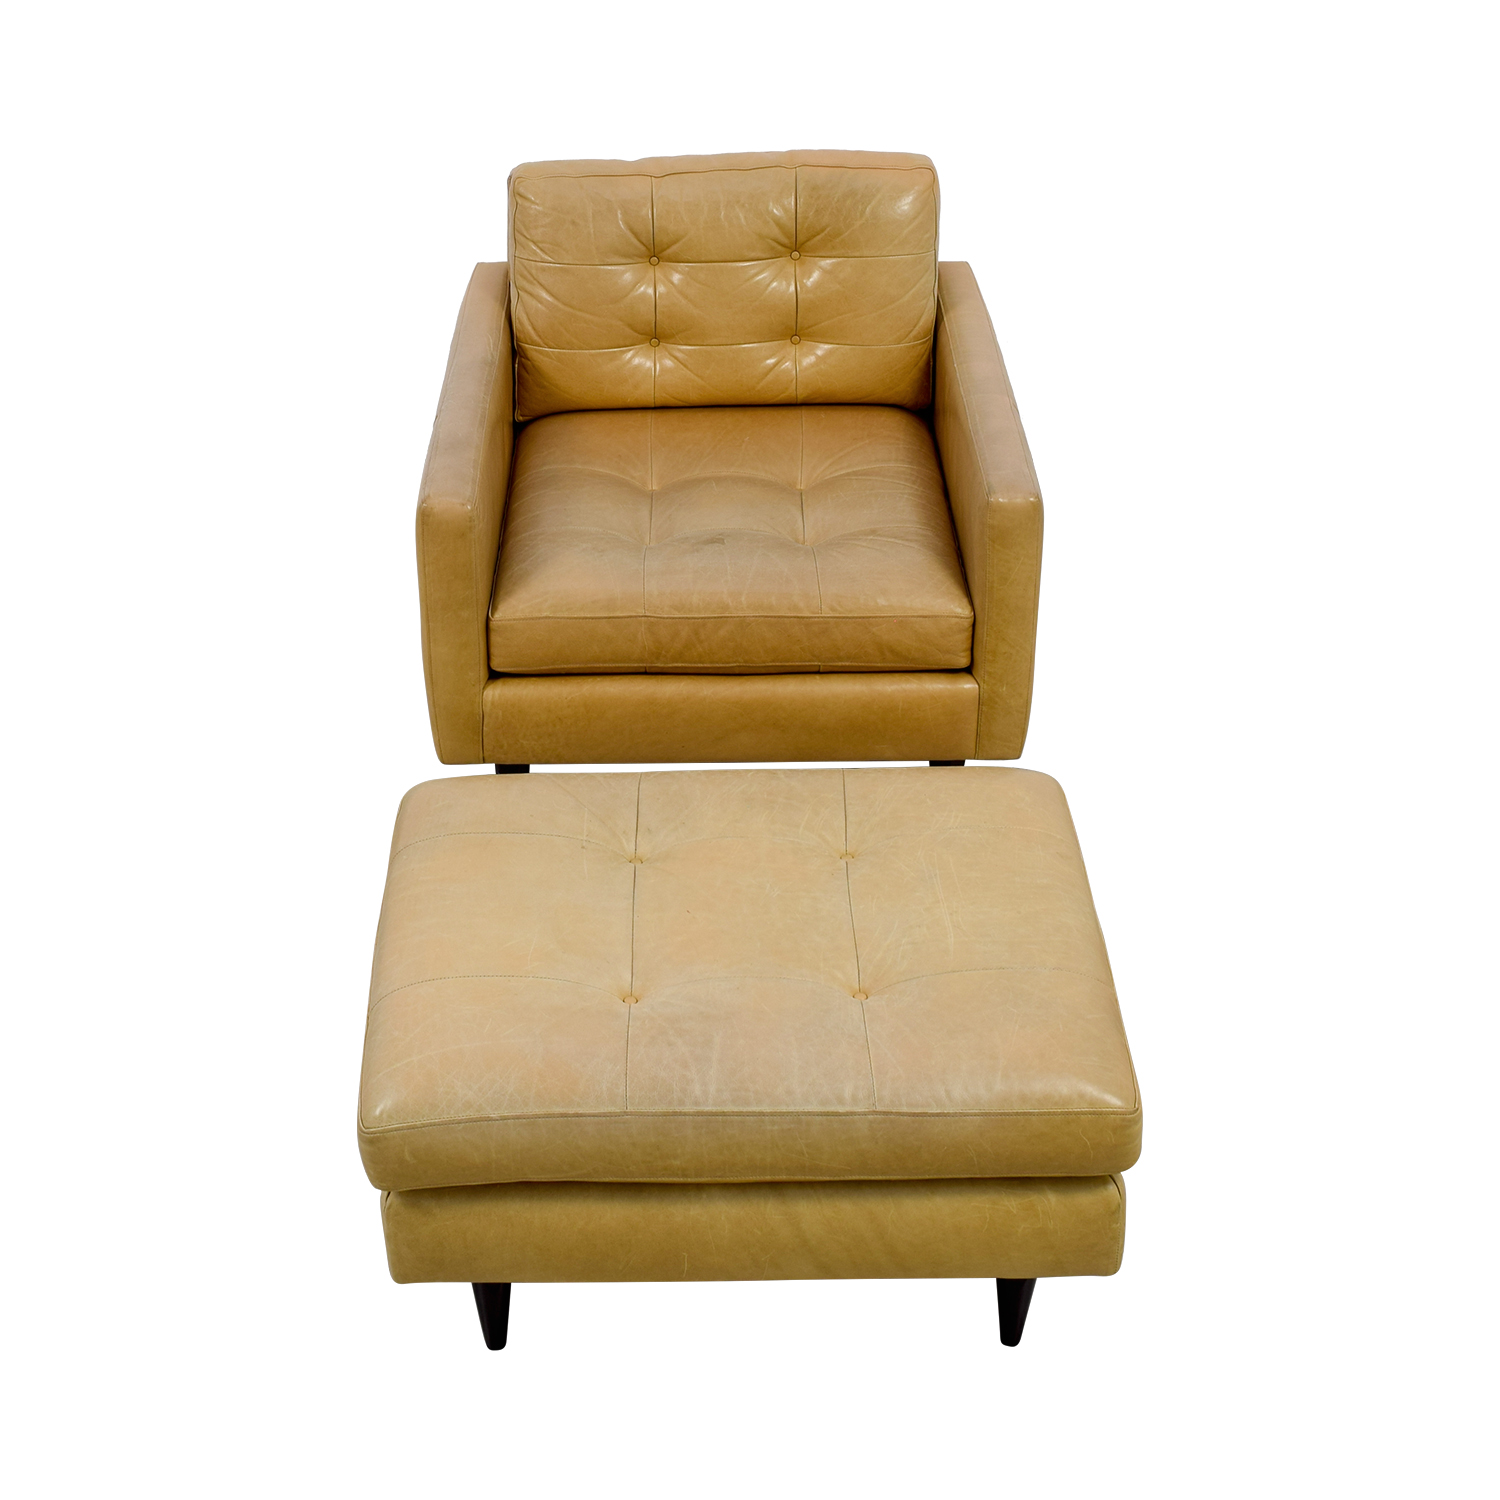 buy Crate & Barrel Beige Tufted Leather Accent Chair and Ottoman Crate & Barrel Accent Chairs